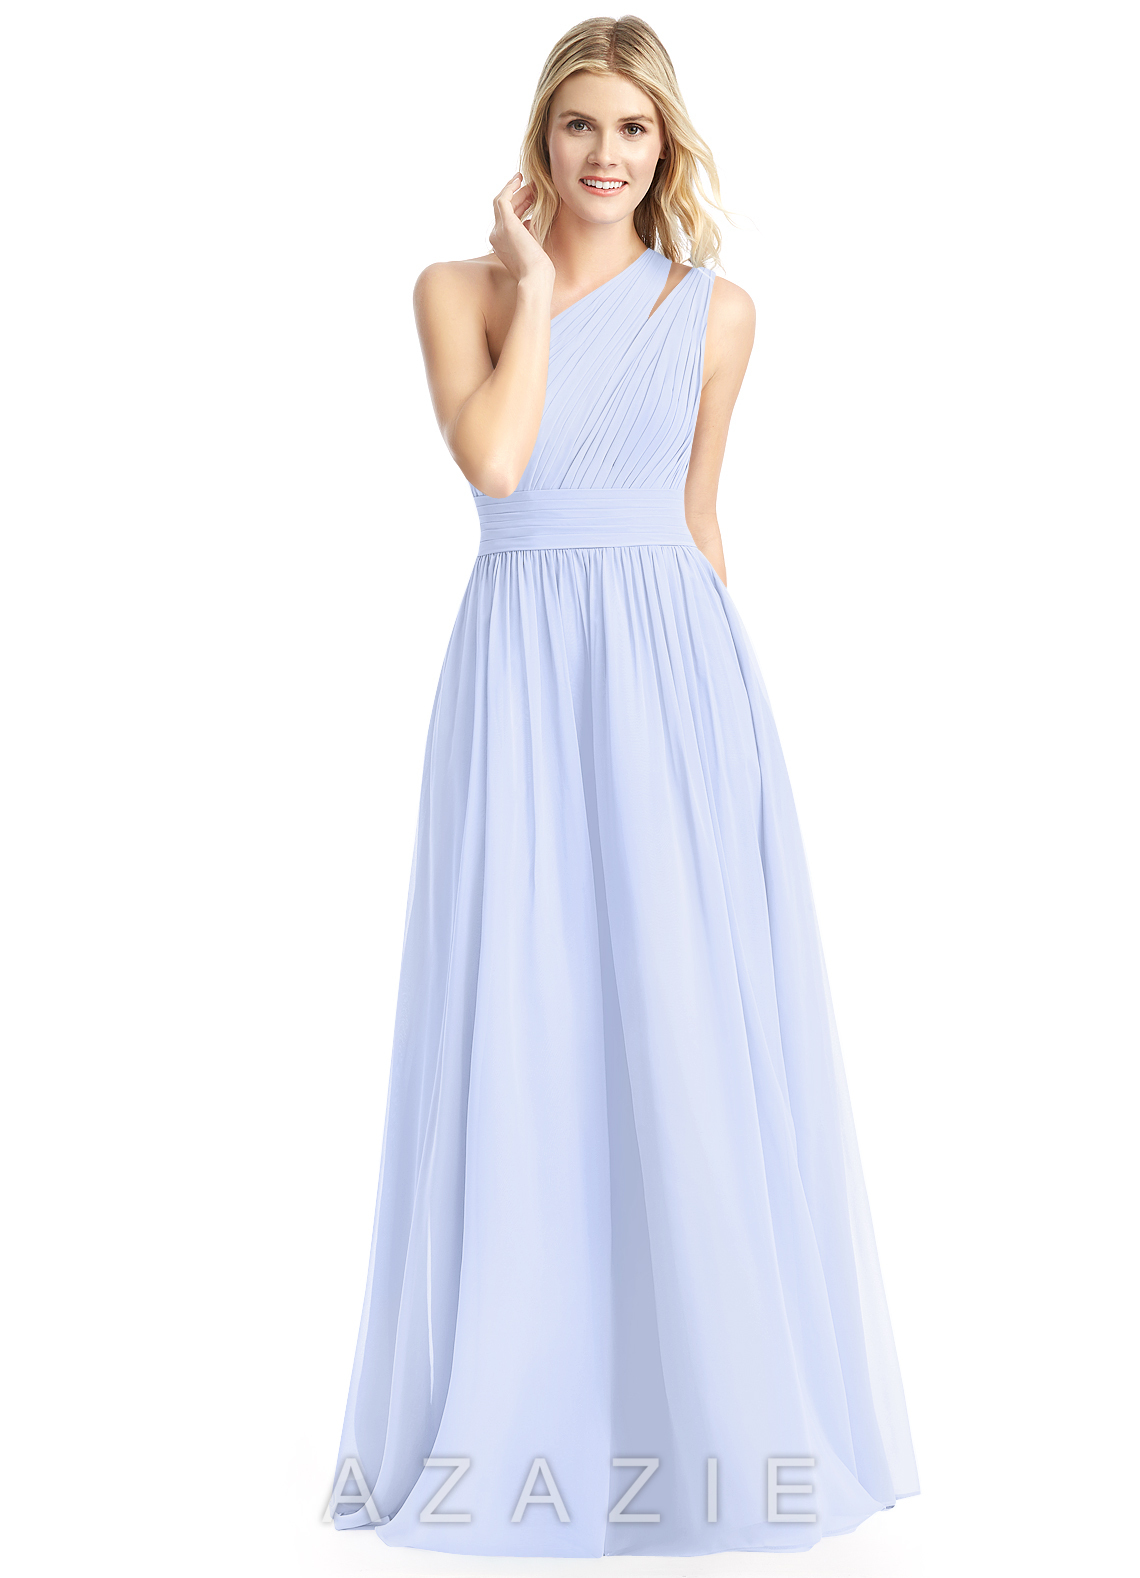 b79b68c3c43 Azazie Molly Bridesmaid Dress